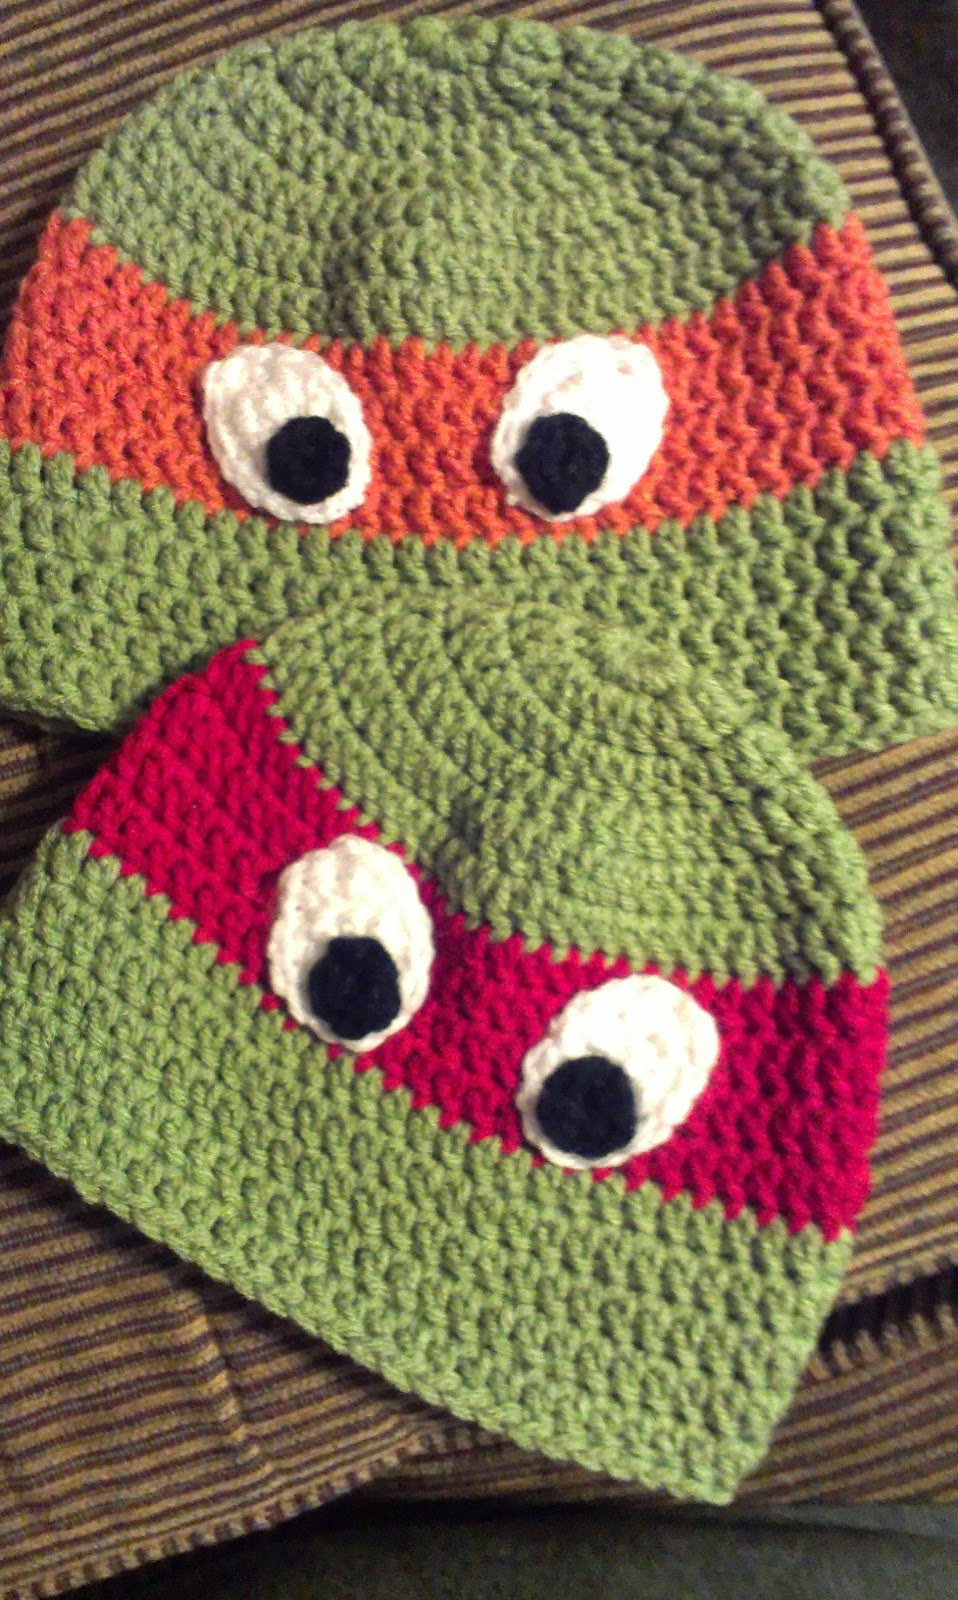 Luxury Crochet Ninja Turtle Patterns Crochet Turtle Of Innovative 48 Images Crochet Turtle